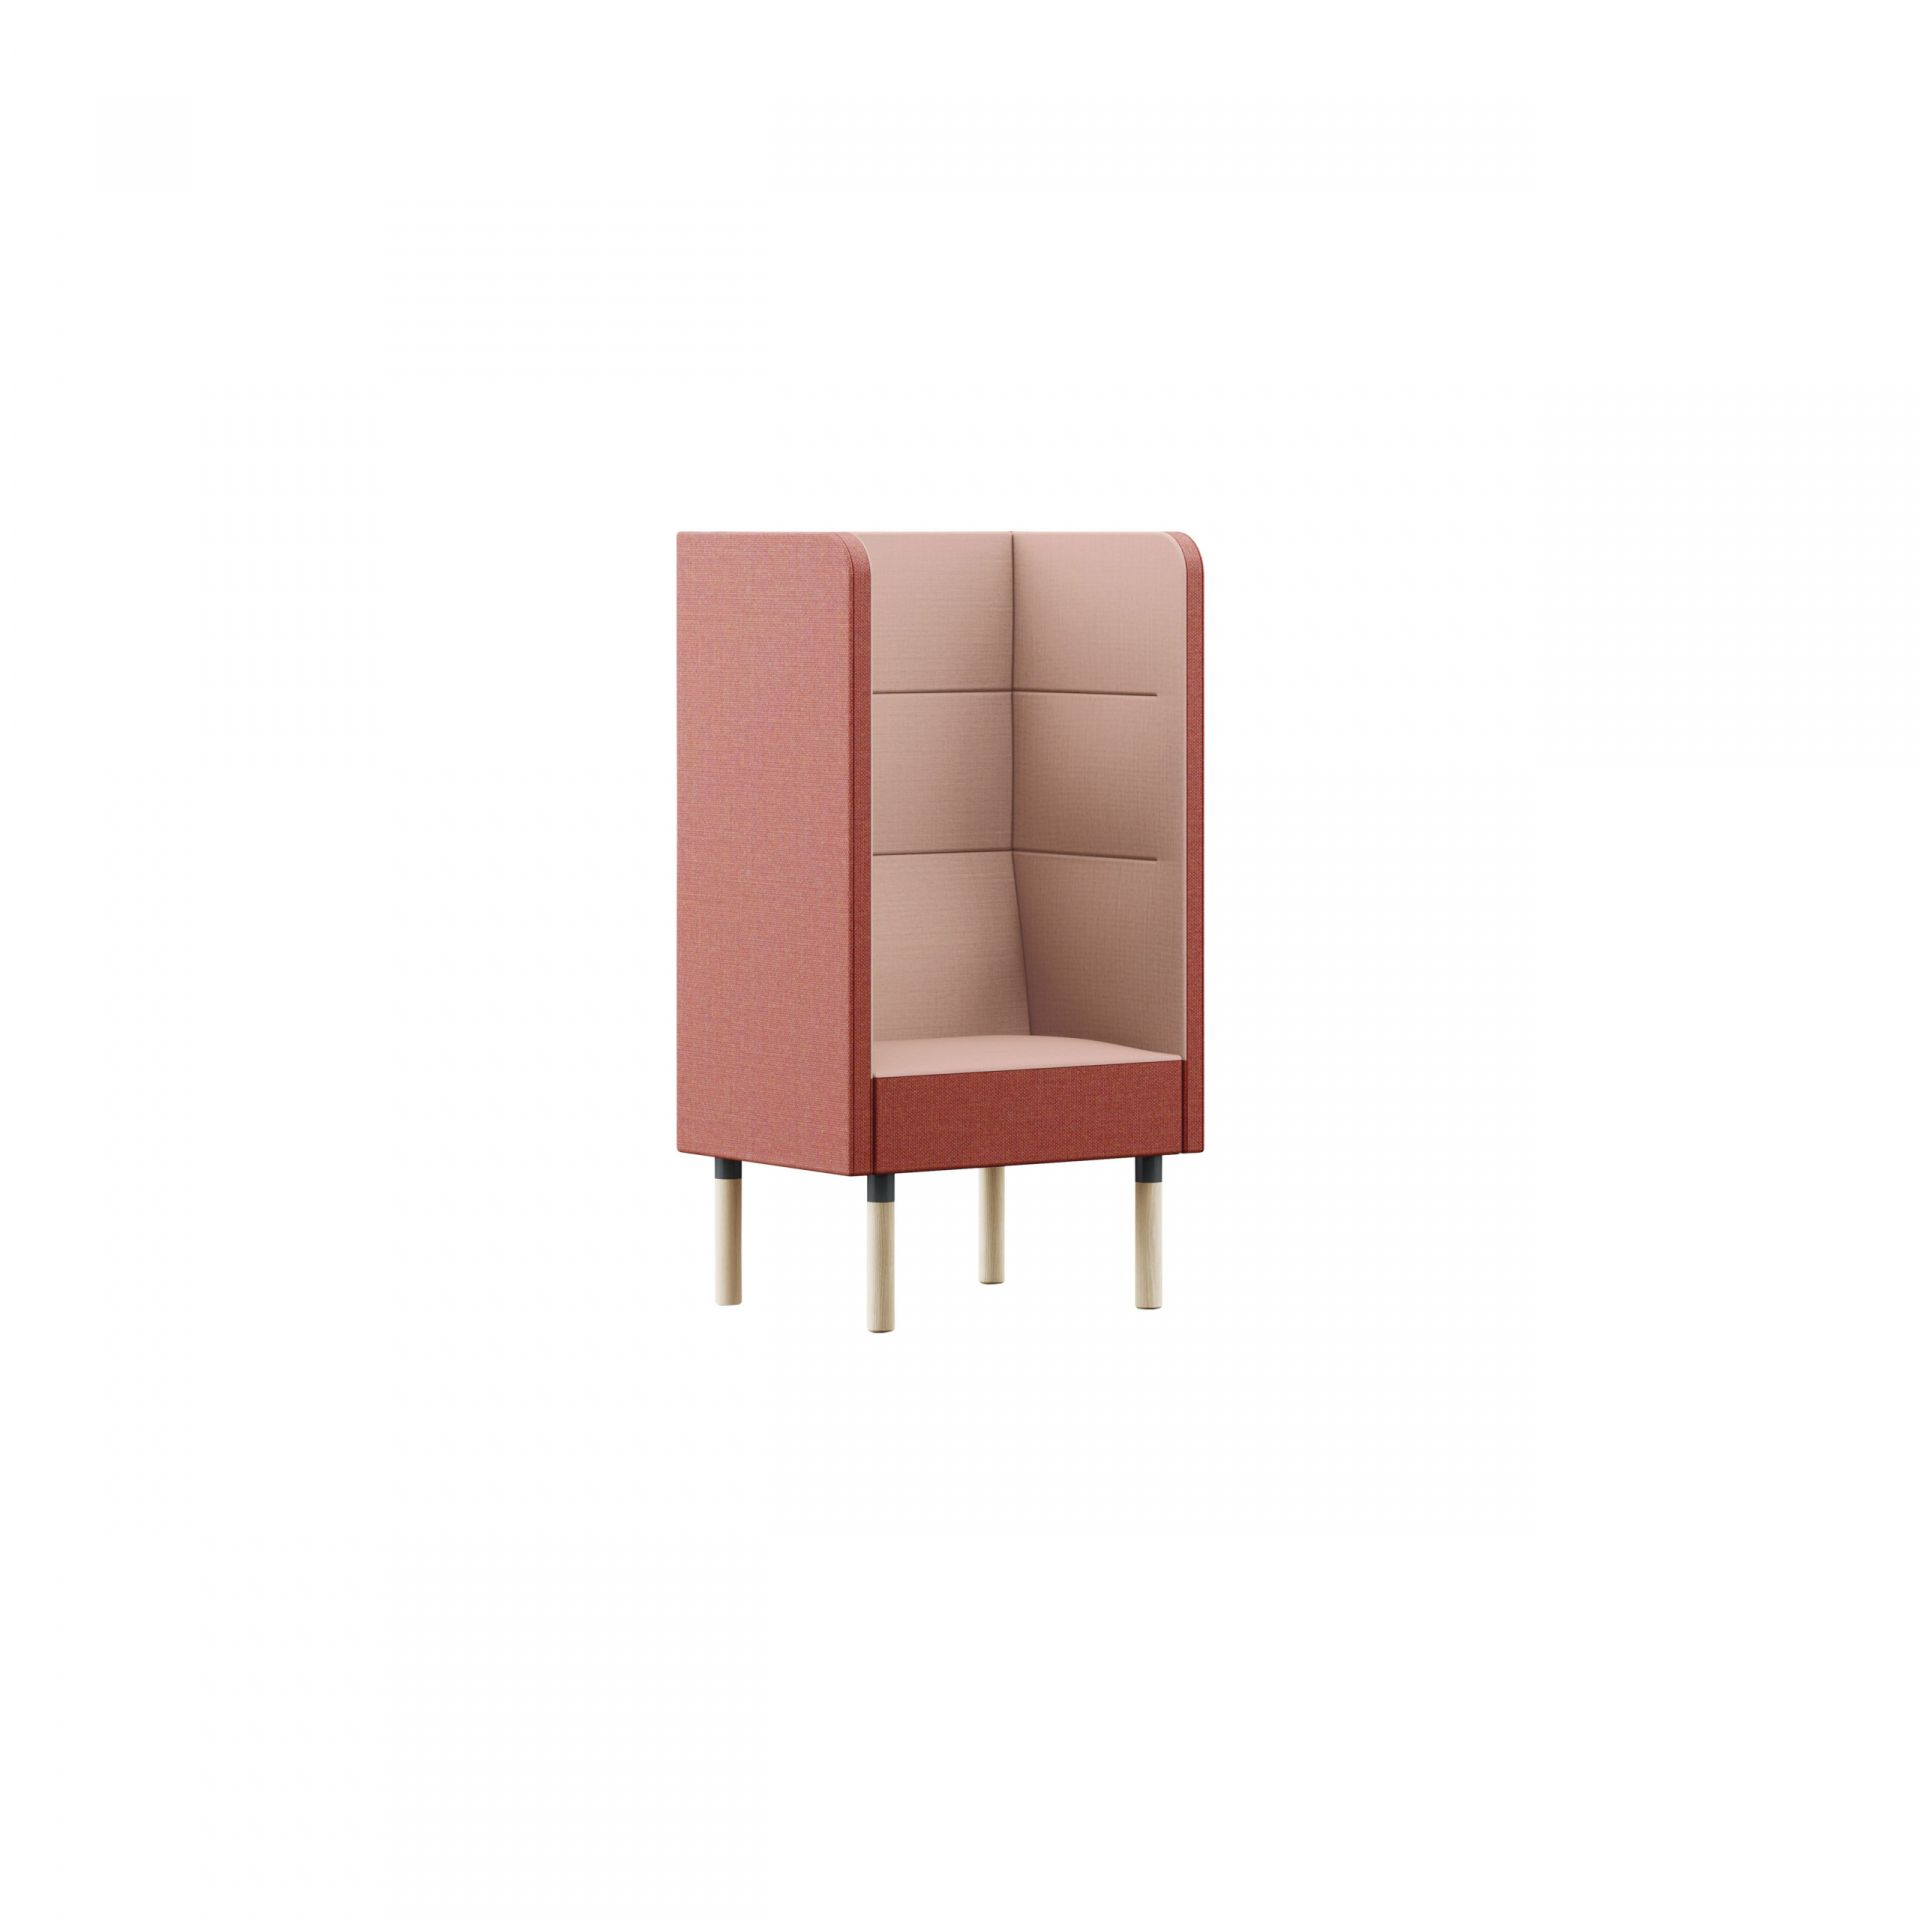 Mingle Sofa with wooden legs product image 4